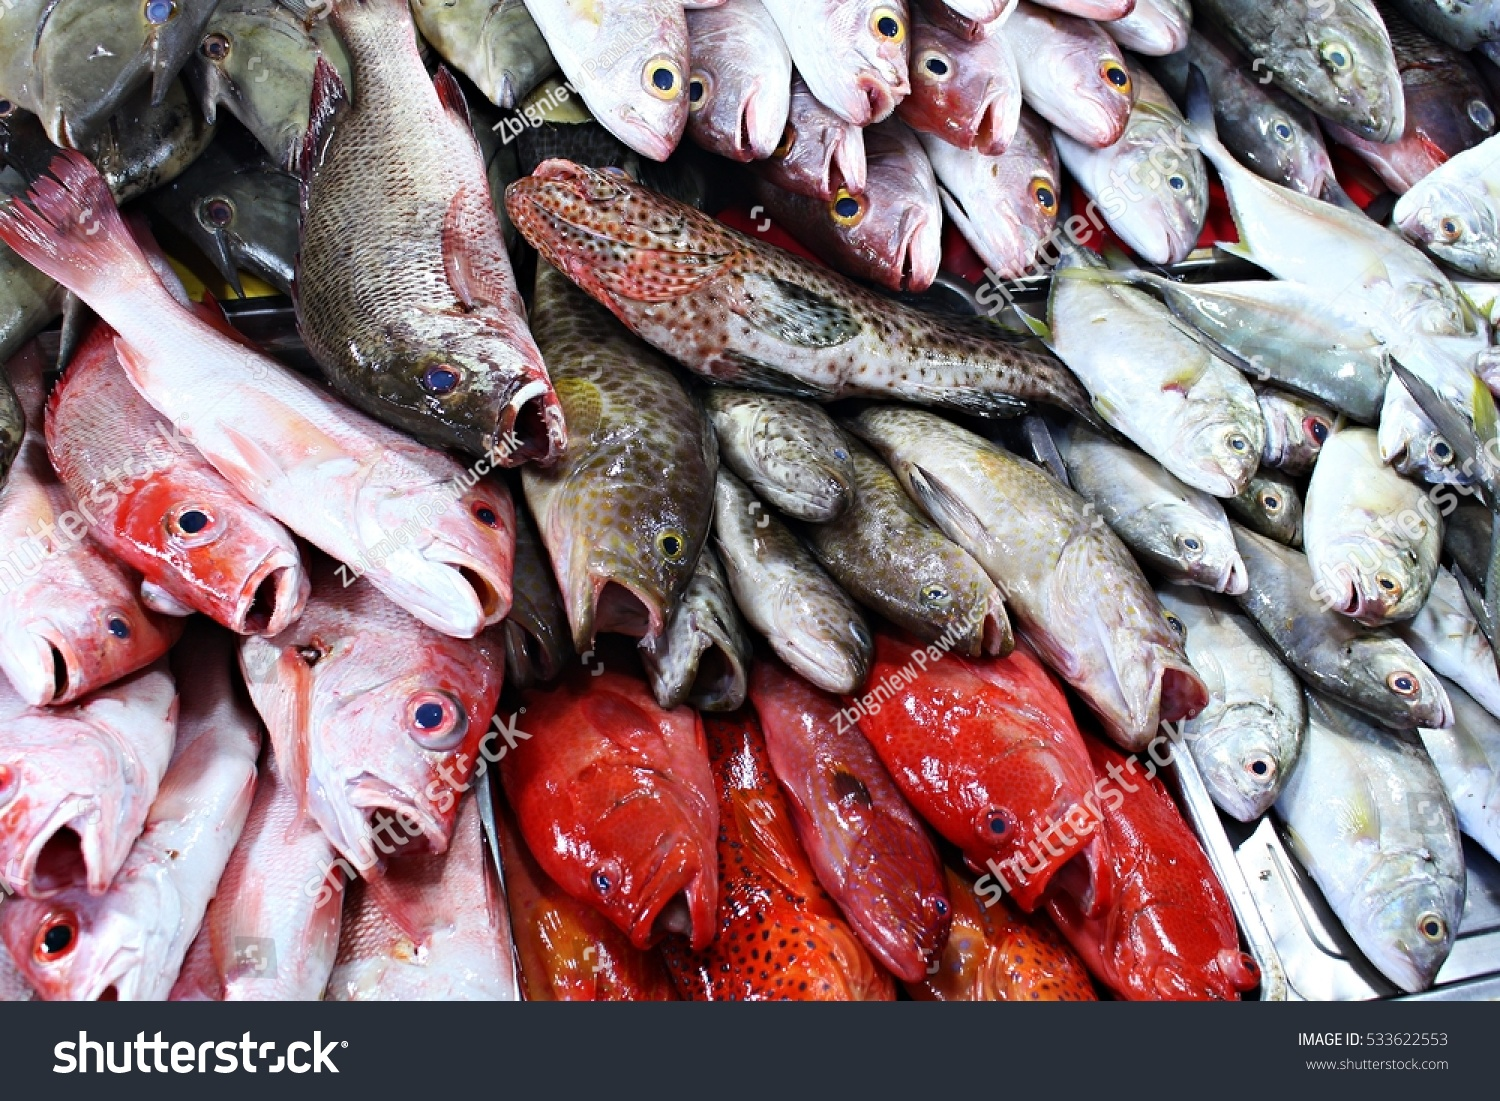 Colorful Exotic Tropical Fish Ocean Seafood Stock Photo (Royalty ...